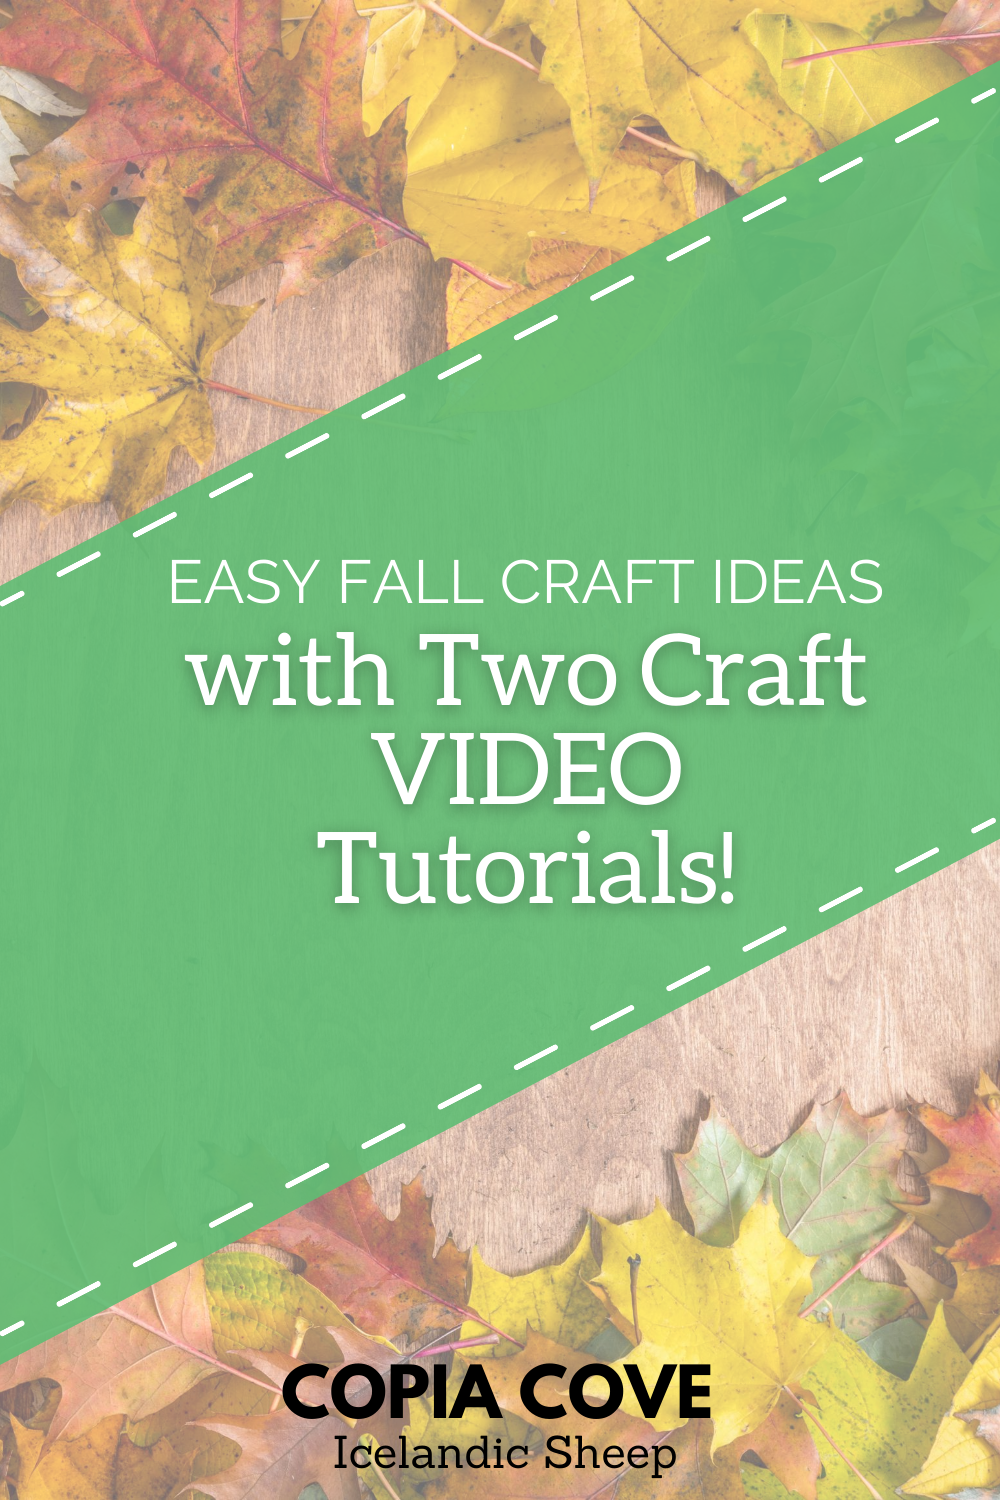 Easy Fall Craft Ideas With Two Craft Video Tutorials Copia Cove Icelandic Sheep Butte Montana Usa